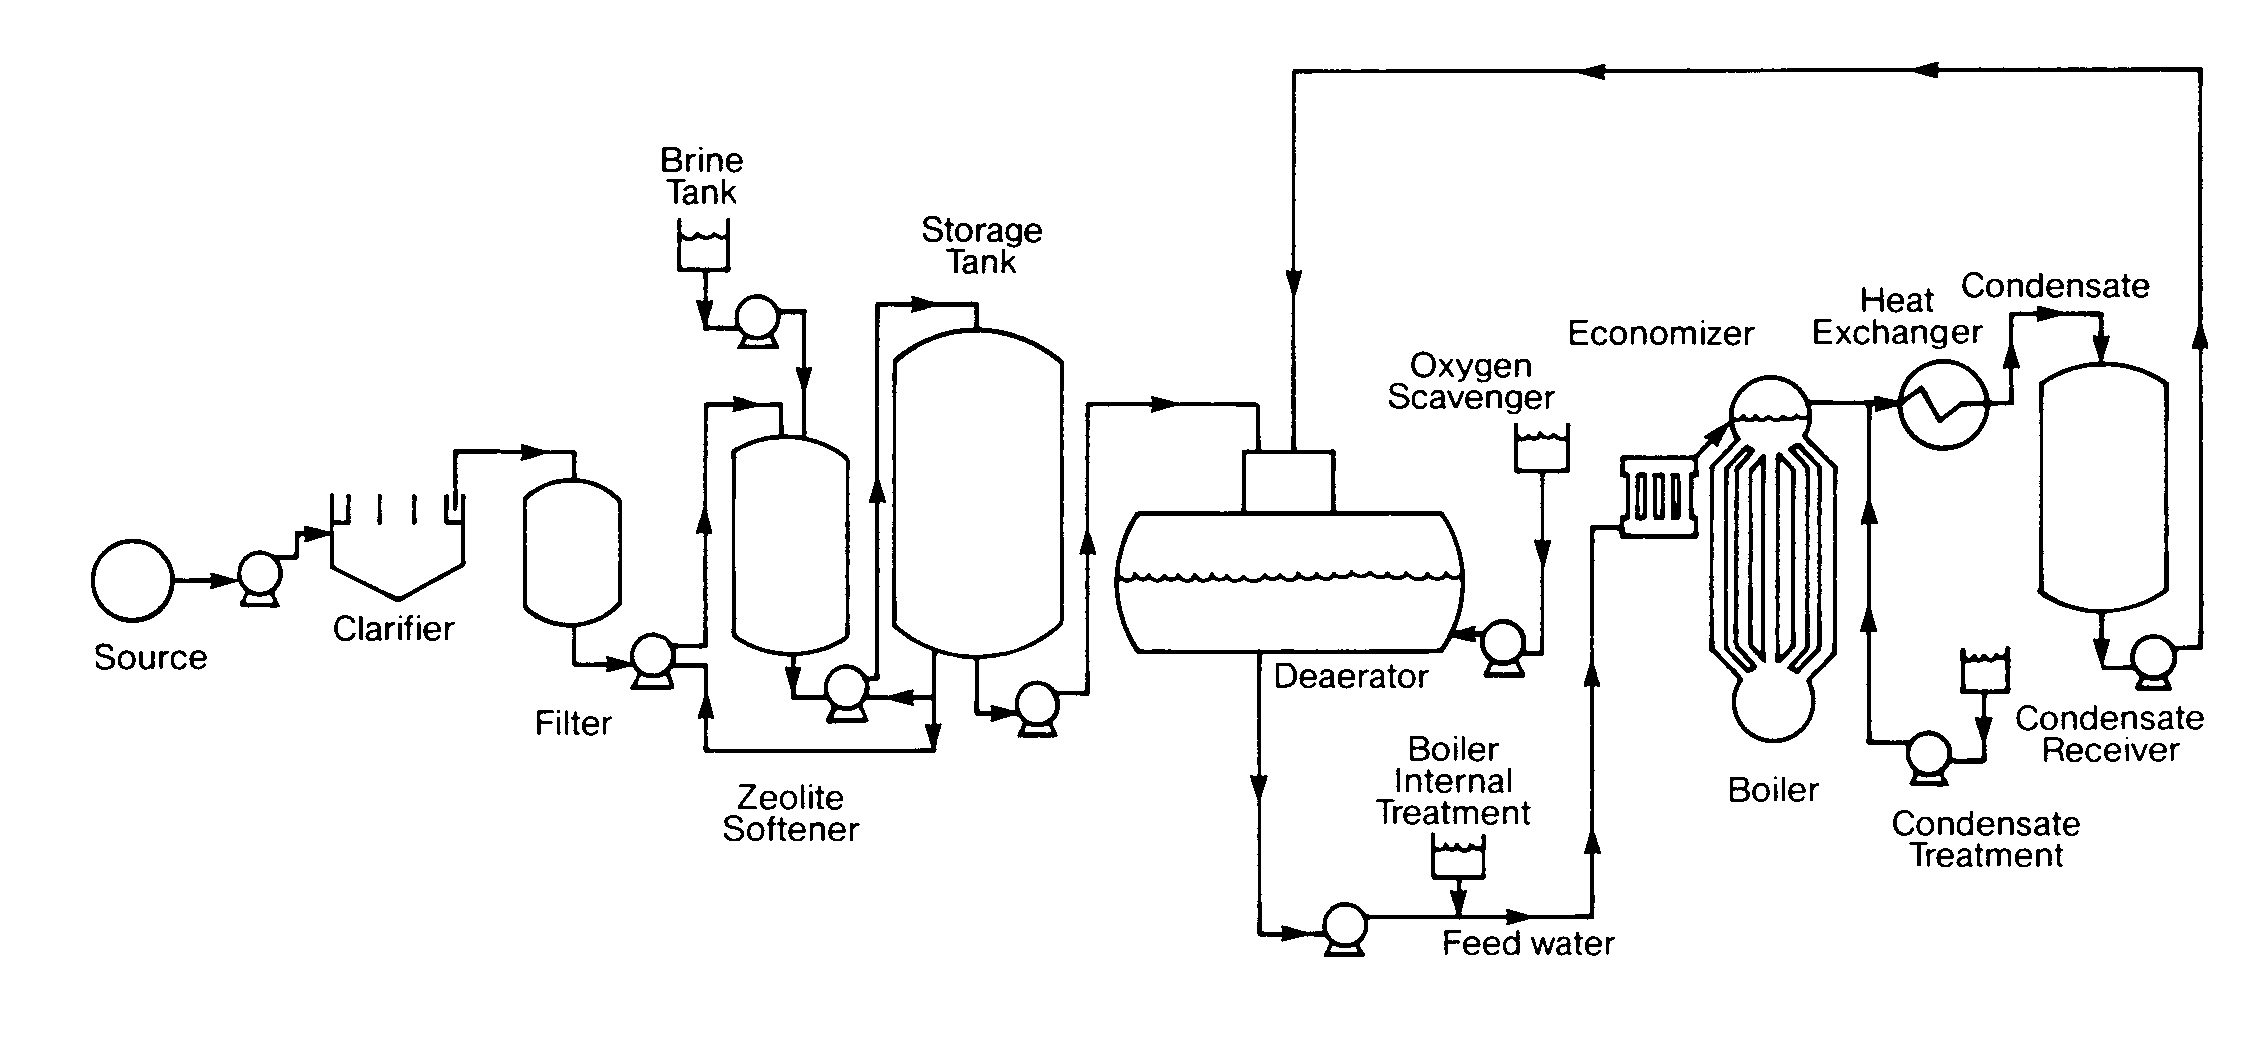 hight resolution of dunkirk boiler wiring diagram central heating wiring